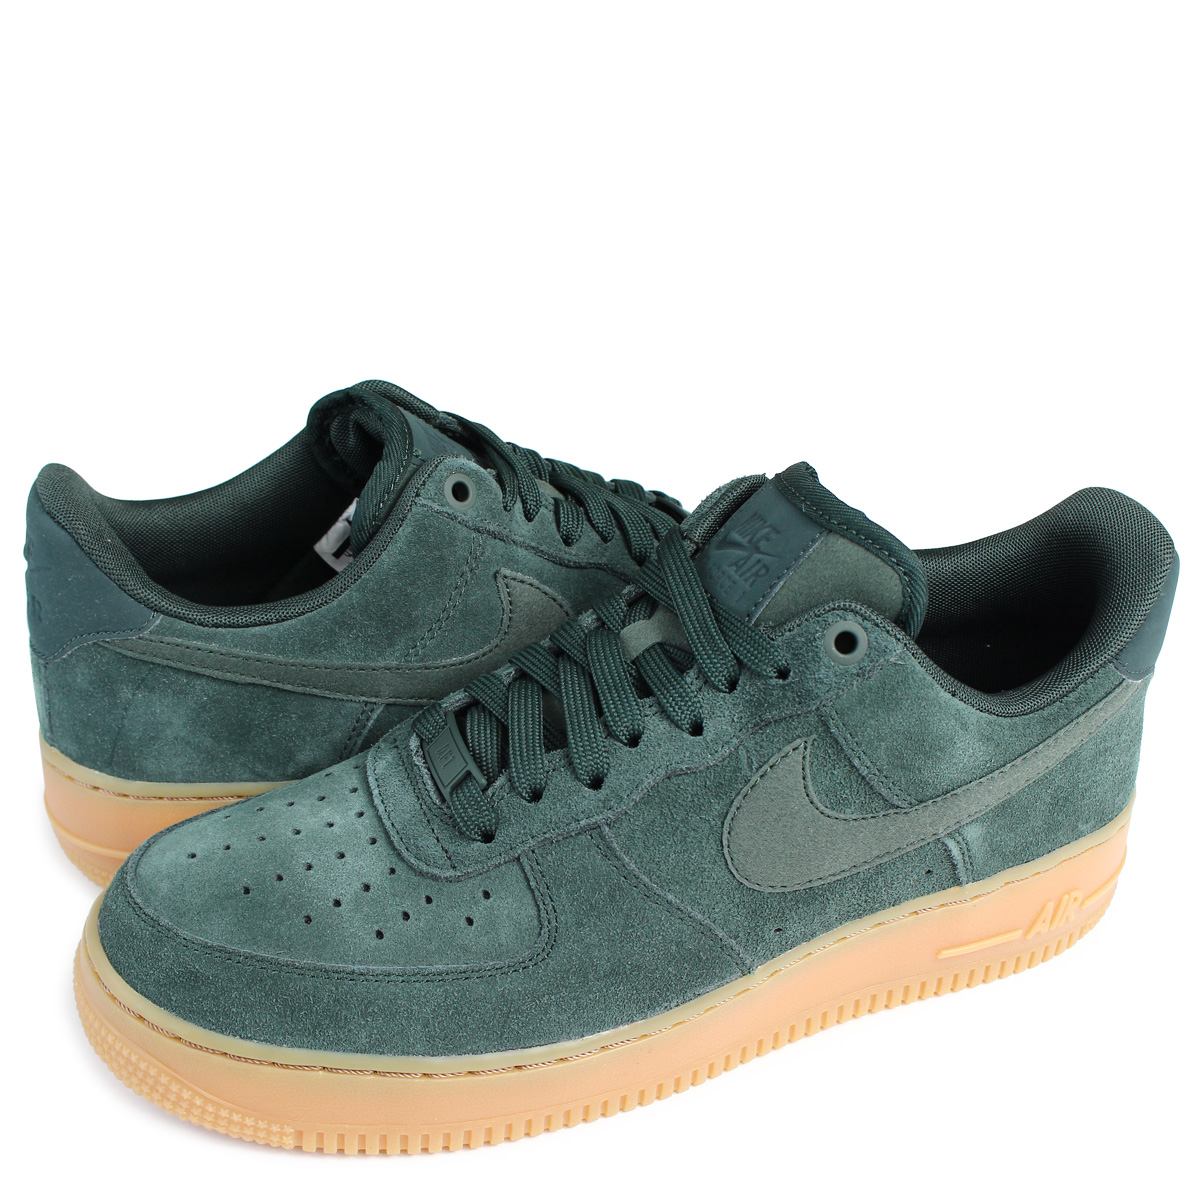 Green Suede Nike AirForce 1